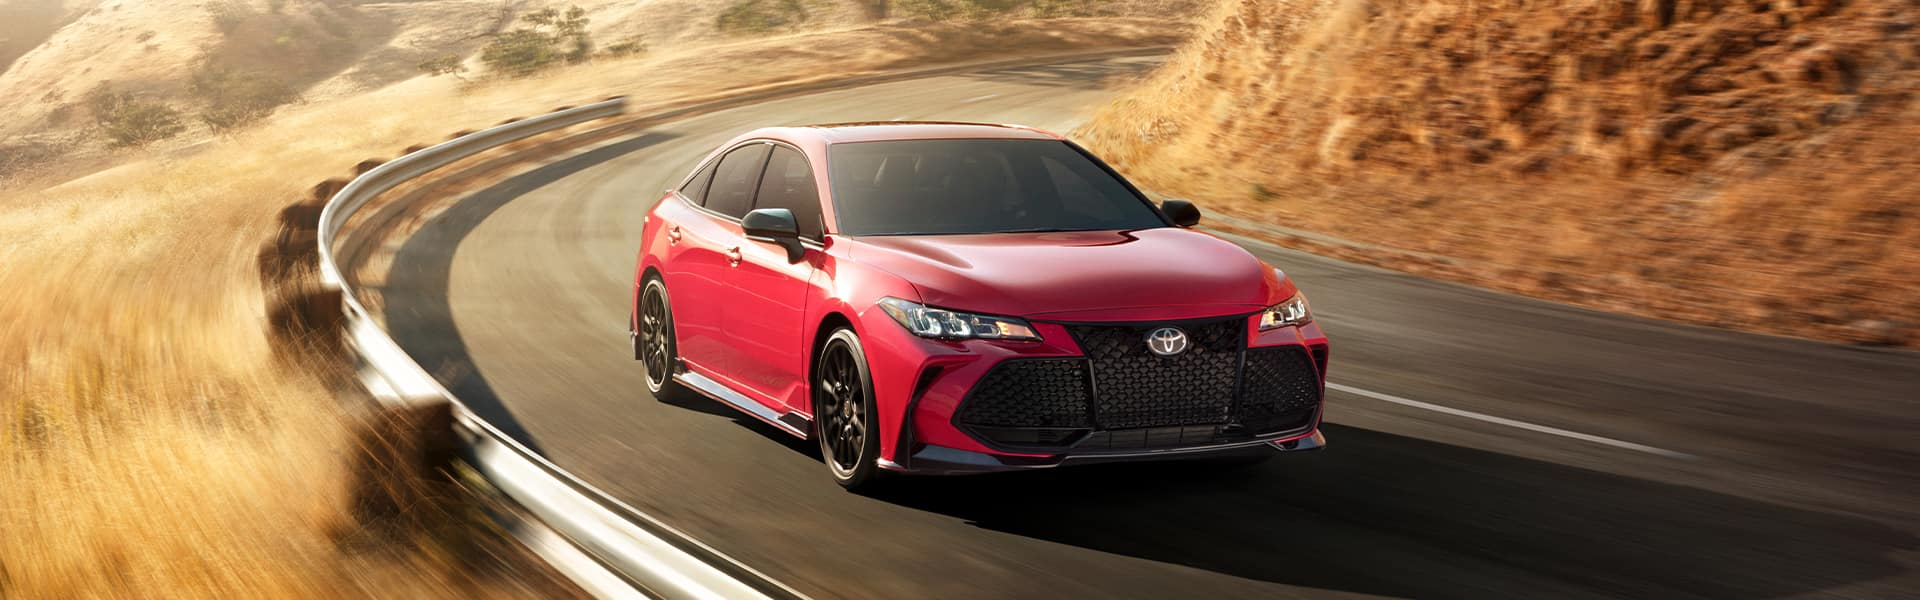 Lancaster Toyota is a Car Dealership in Lancaster near York PA   Red 2020 Avalon Driving Around Bend